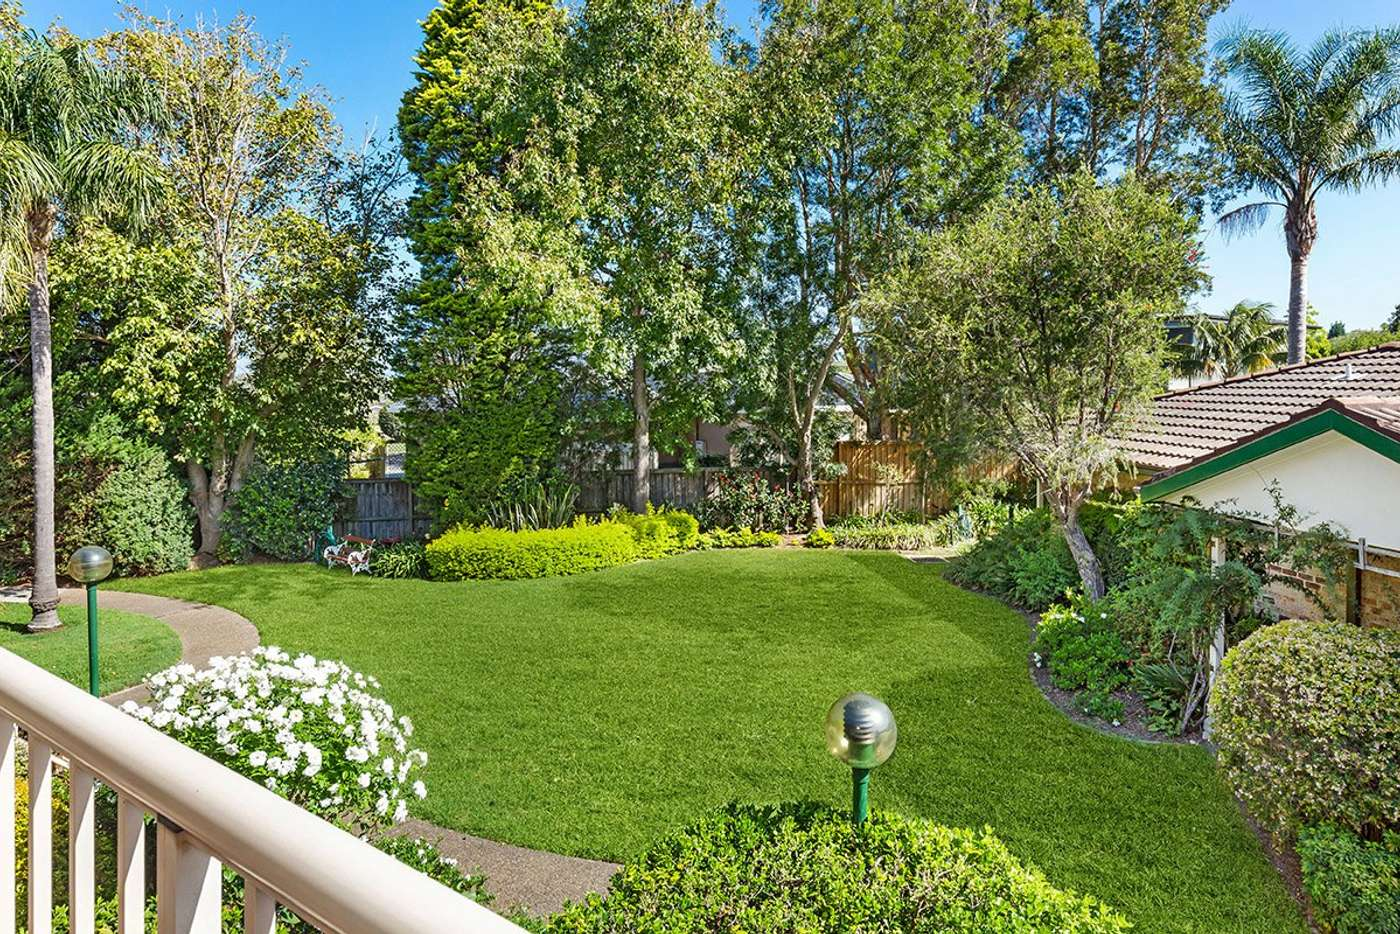 Main view of Homely unit listing, 20/2-8 Kitchener Street, St Ives NSW 2075